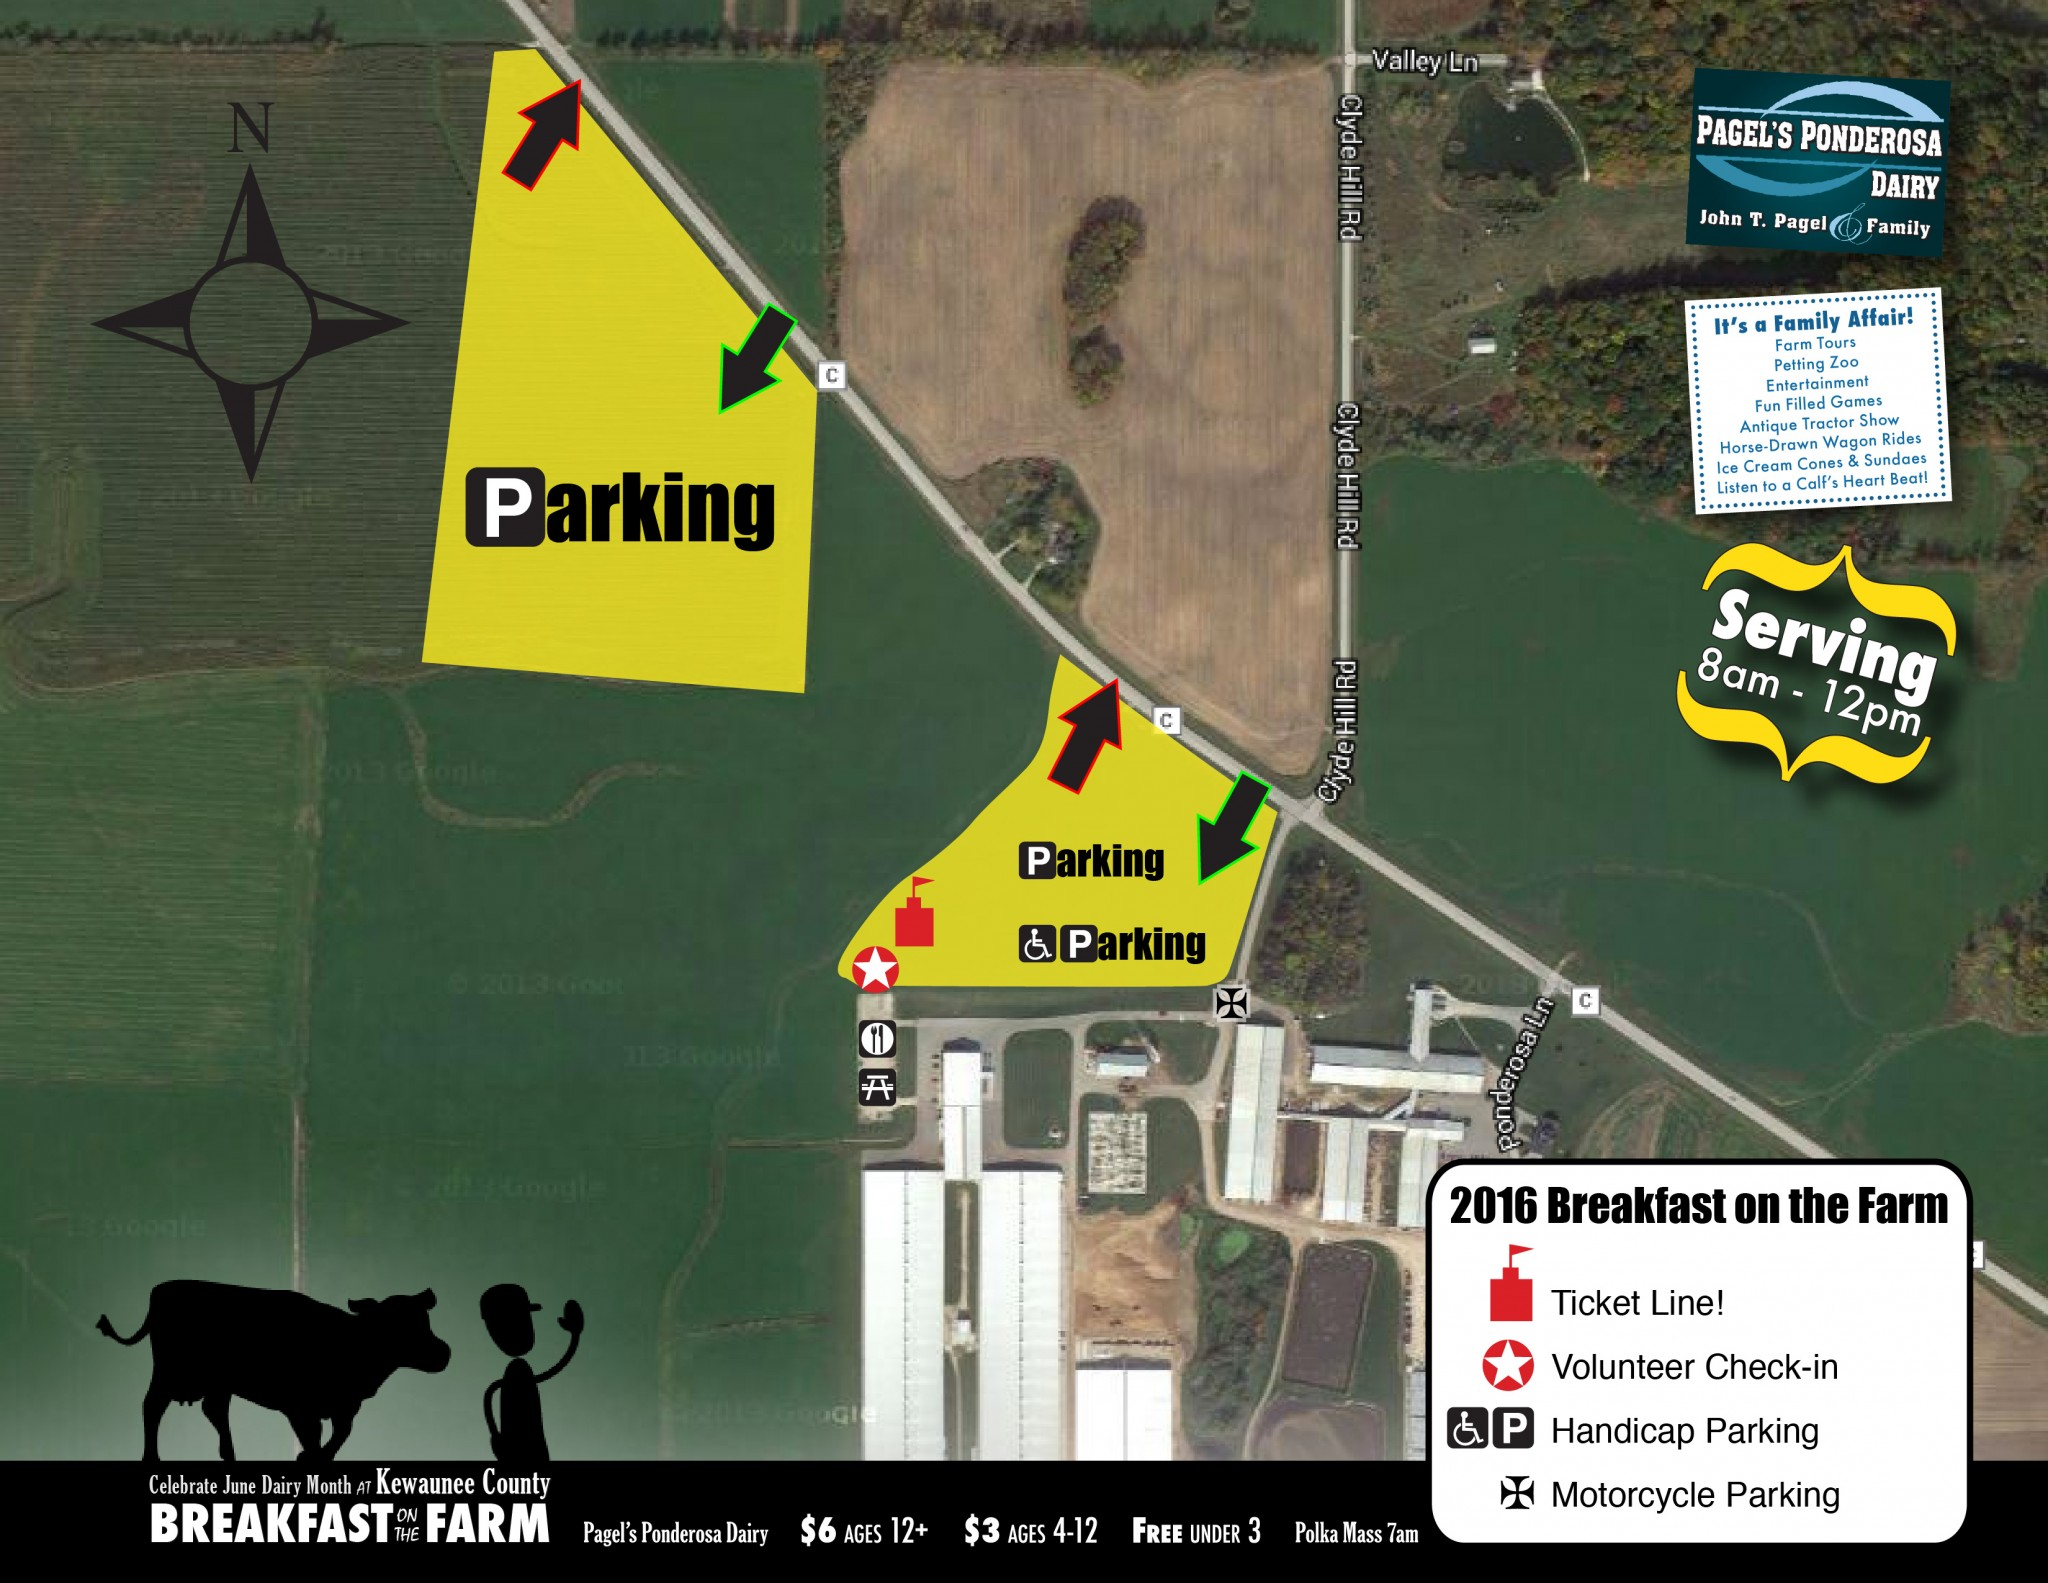 Parking for 2016 Breakfast on the Farm